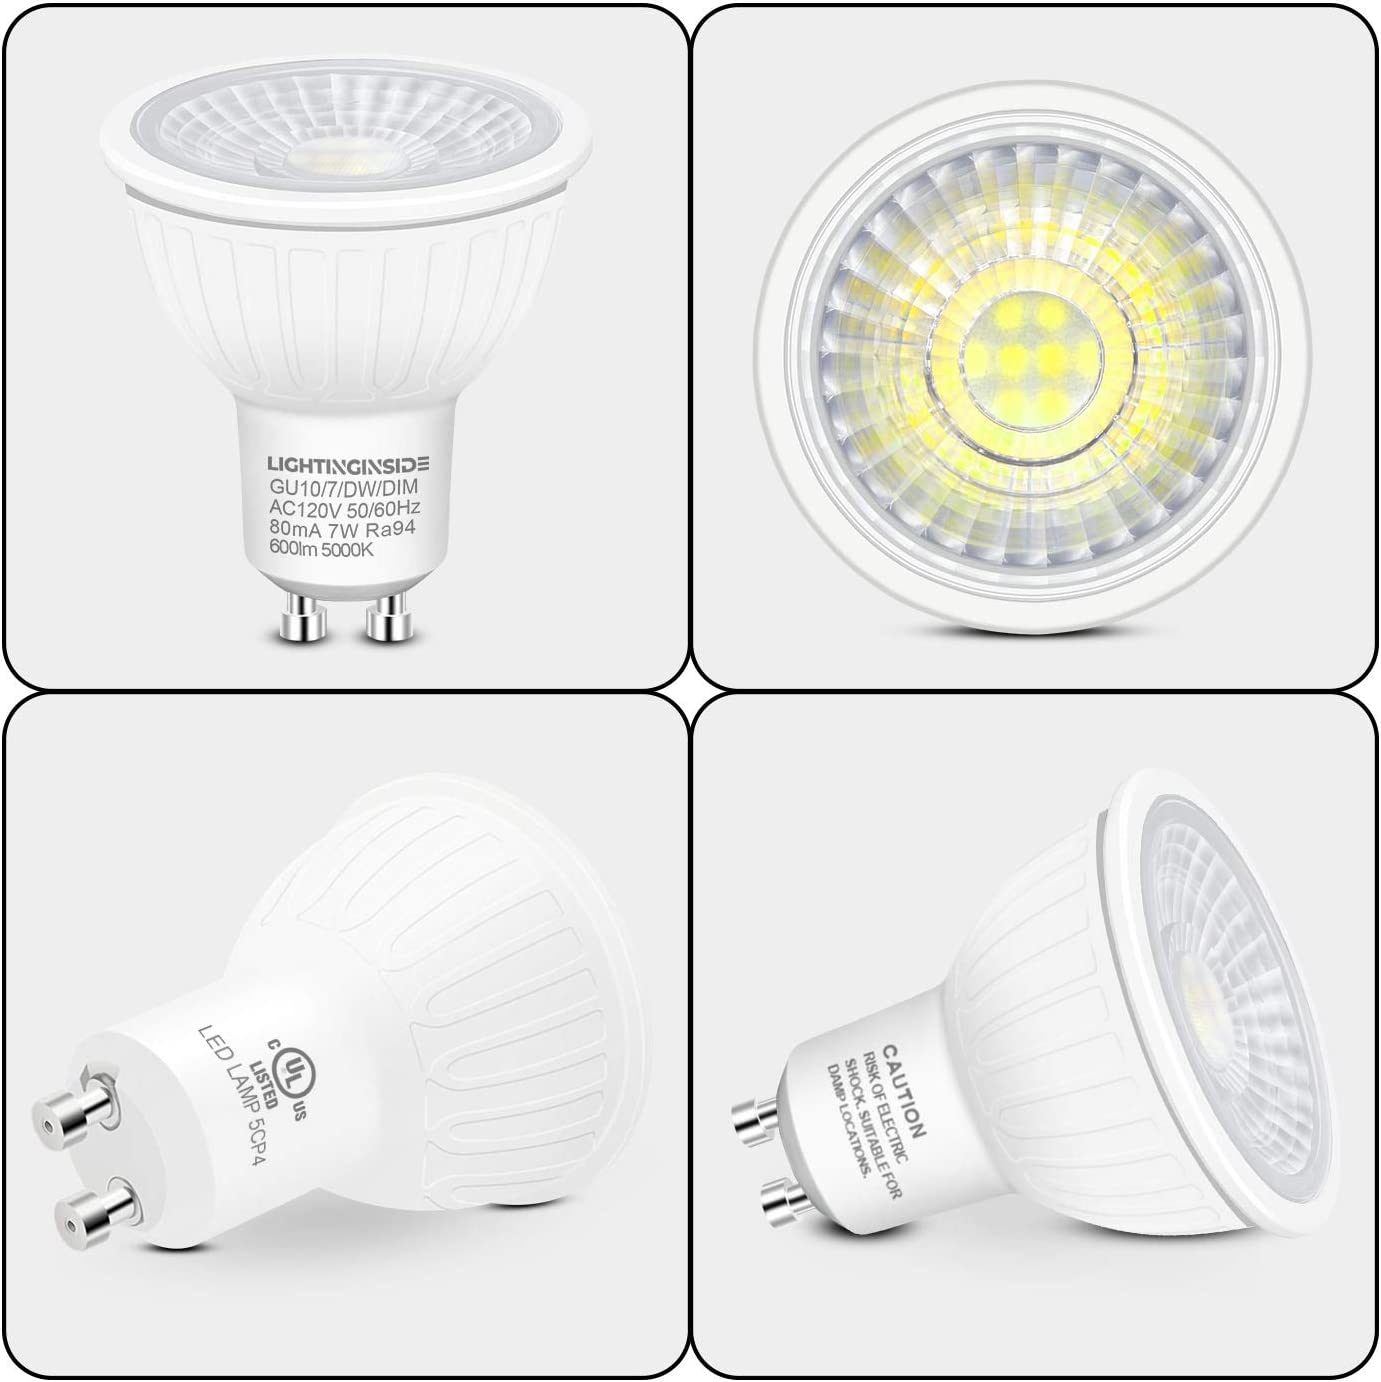 7W GU10 Recessed Lighting Bulb Pack of 8 Flicker Free 75W Halogen Equivalent UL Listed 600LM Daylight 5000K Spotlight Bulb for Track Lighting Dimmable GU10 LED Bulbs